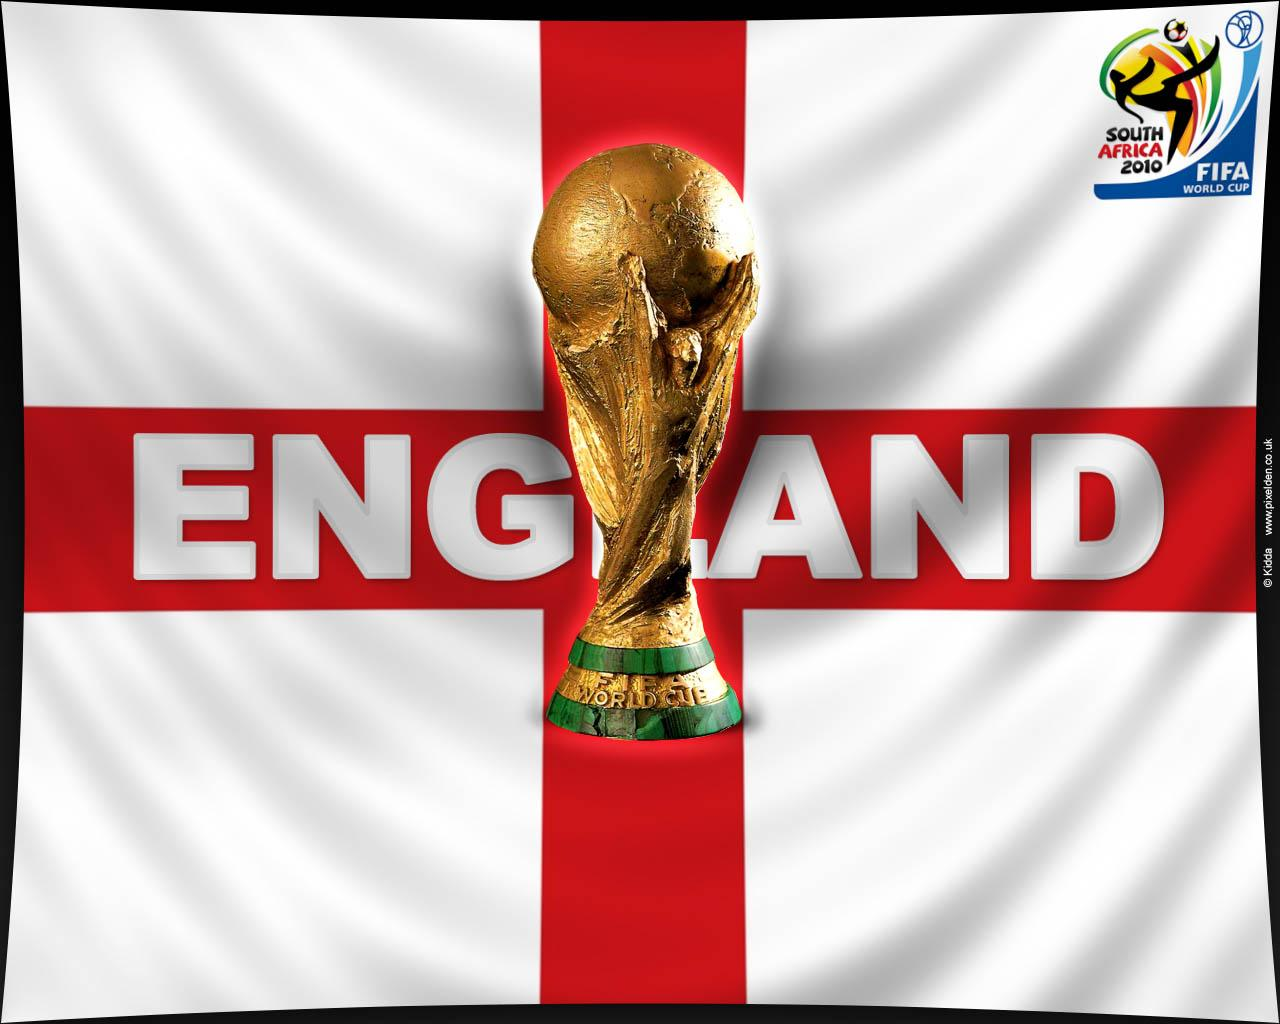 England World Cup Wallpapers Wallpaper Cave